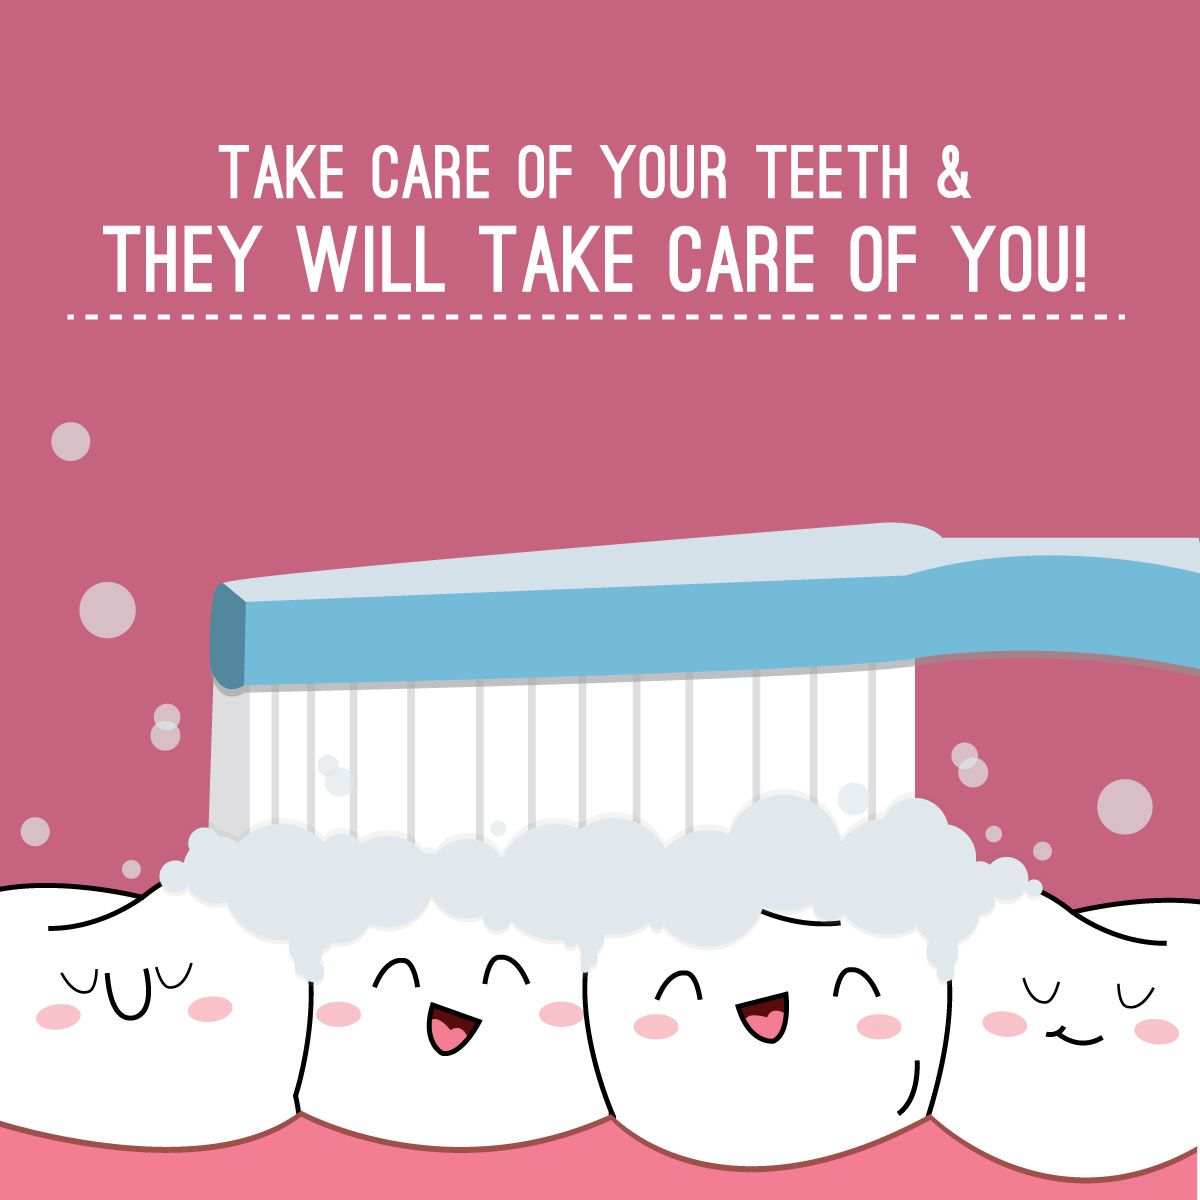 You and your teeth can be best friends for life! Take care